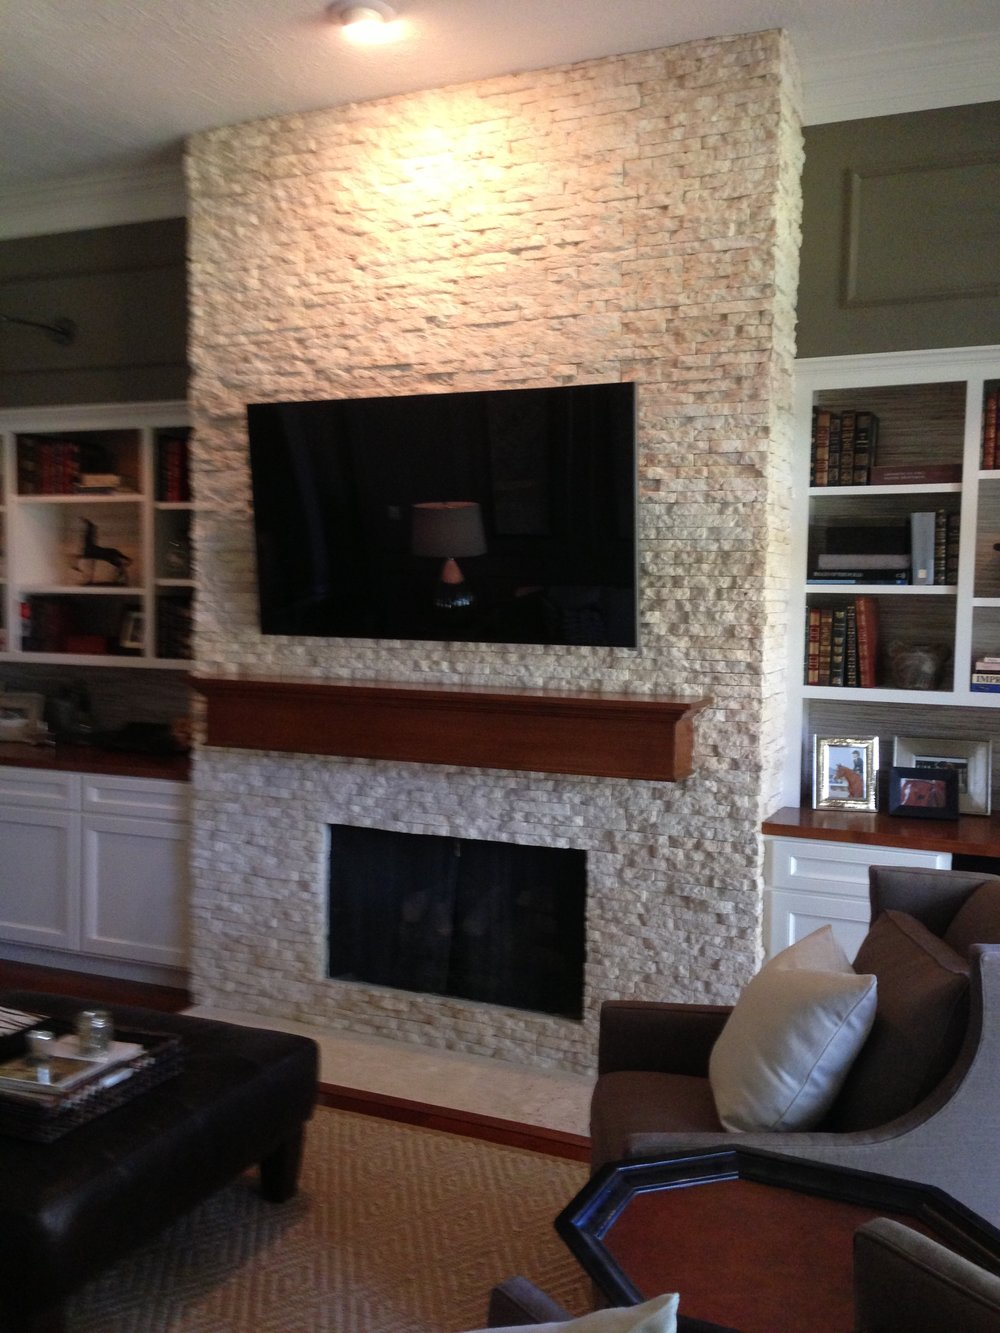 After  - Fireplace wall remodel w / tv mounted above